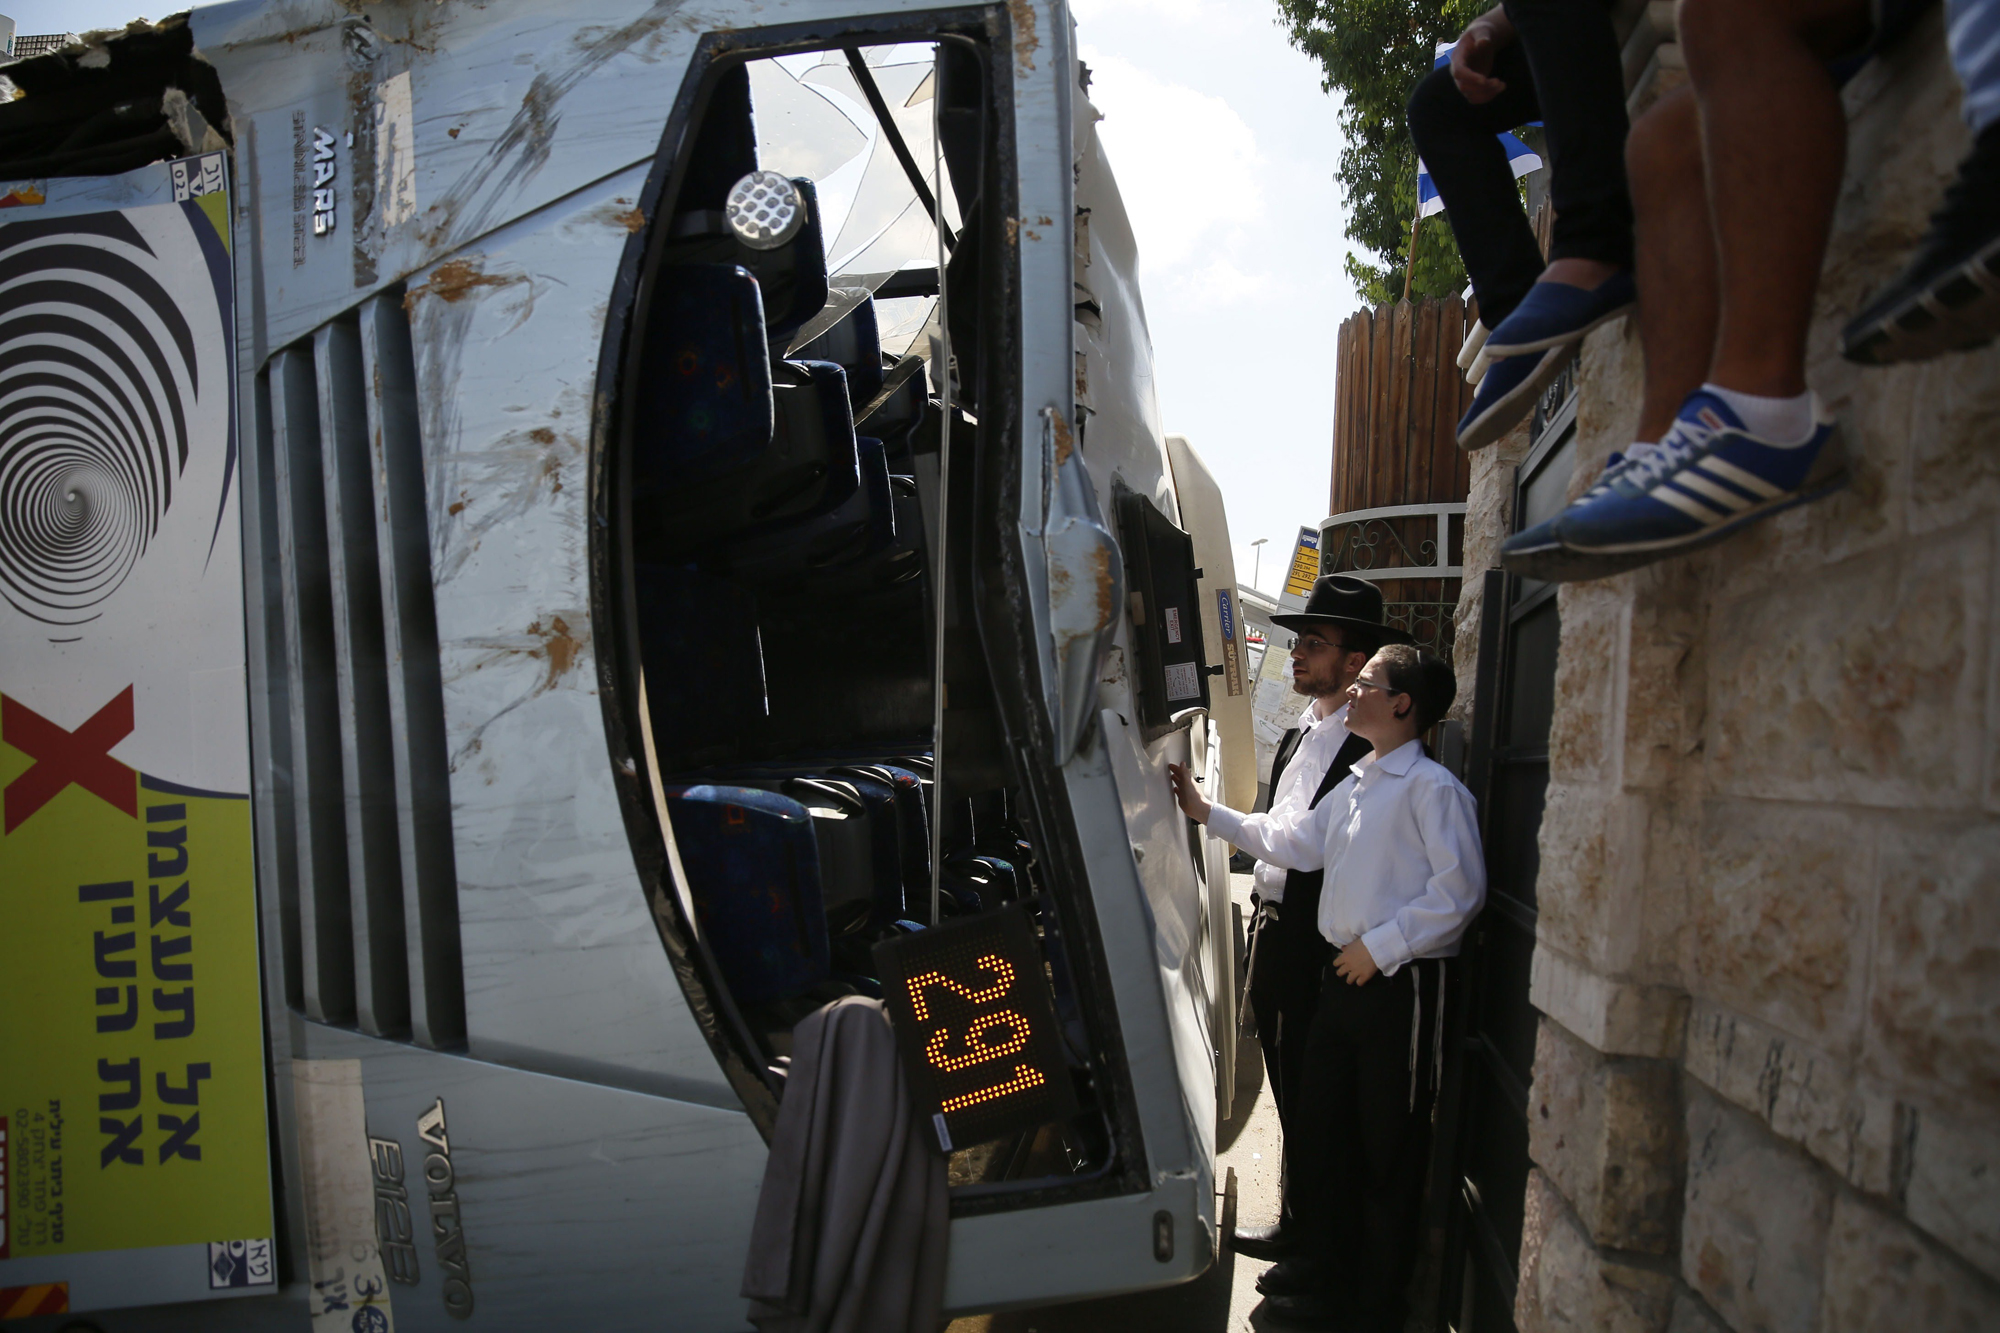 Onlookers inspect an overturned bus after a Palestinian man rammed an excavator into it, on Aug. 4, 2014 in Jerusalem, killing one person and lightly injuring five others.